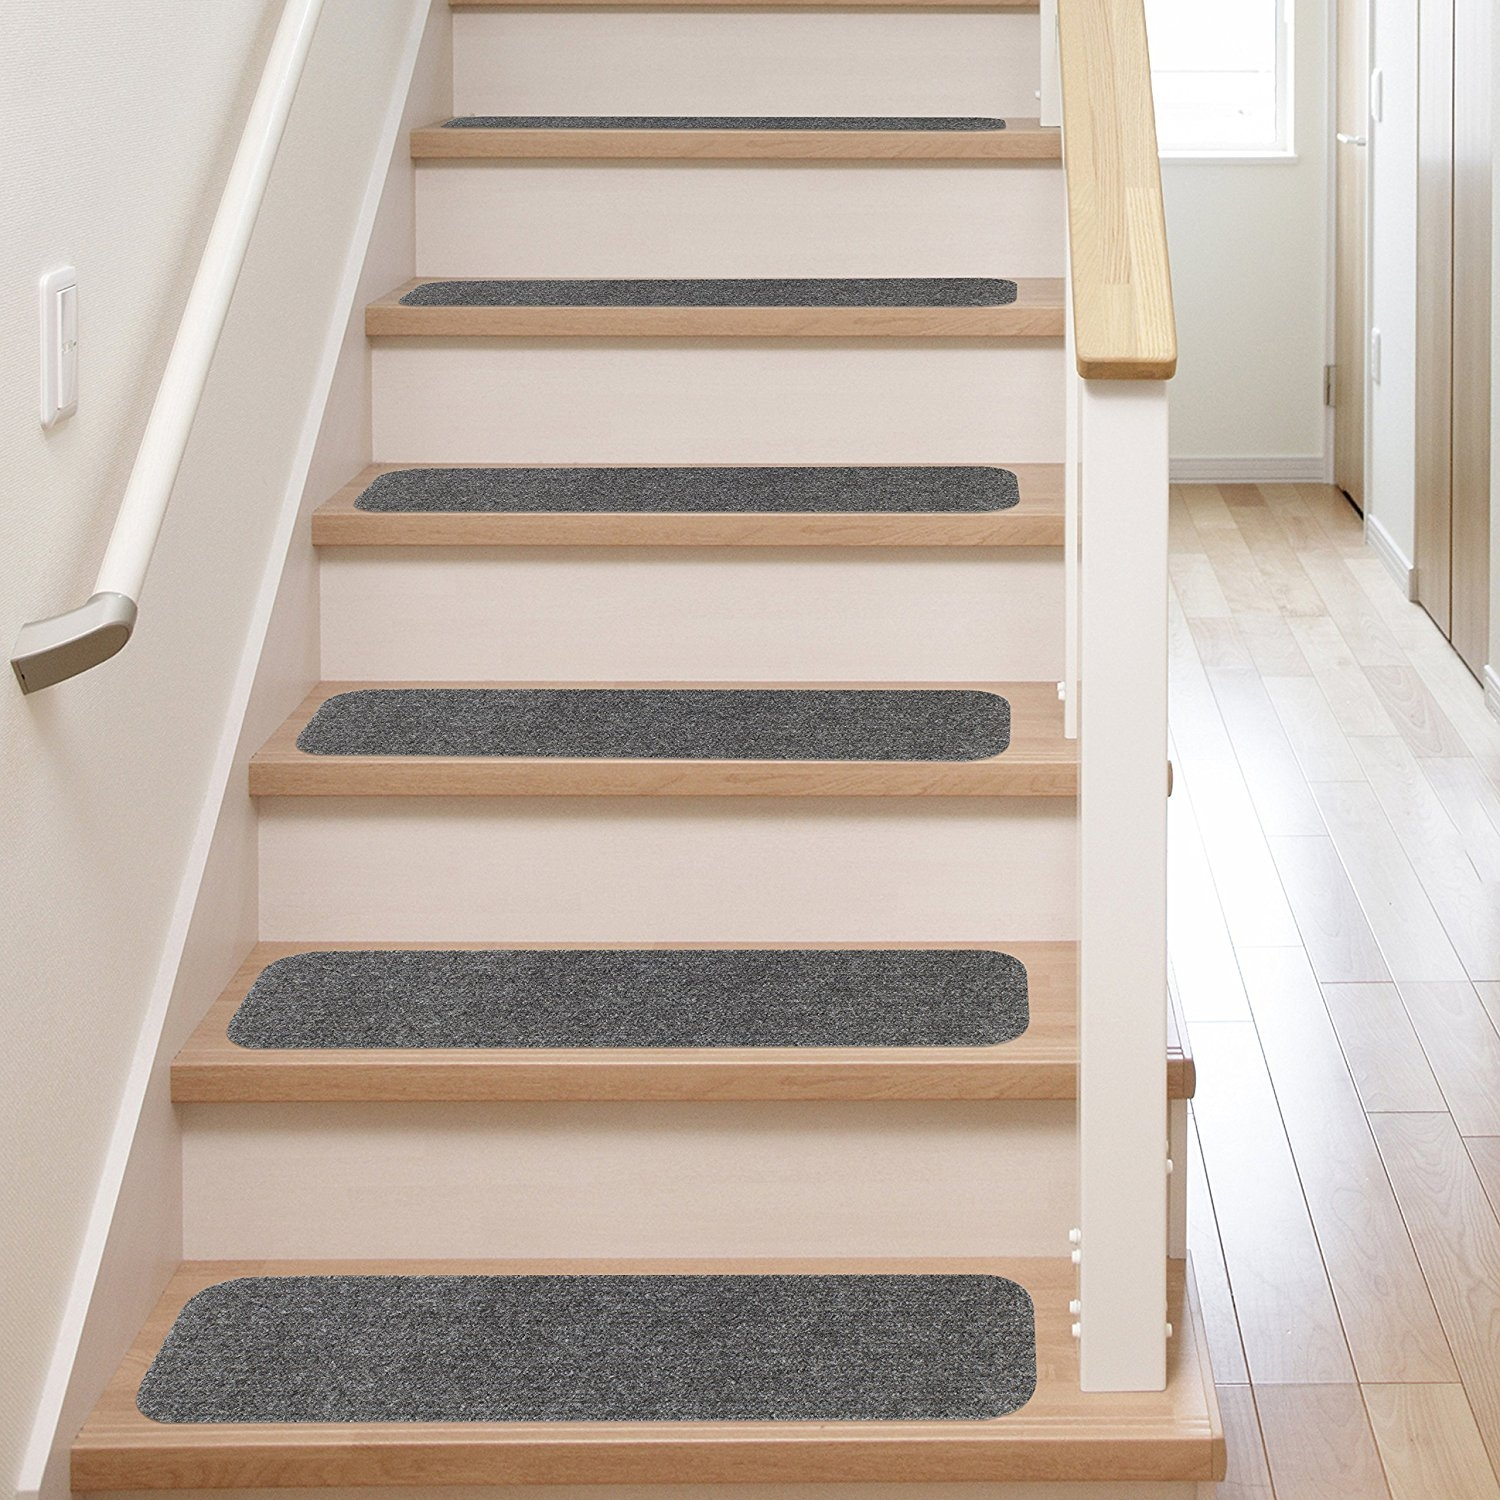 13 Stair Treads Non Slip Carpet Pads Easy Tape Installation Intended For Floor Treads (View 12 of 20)